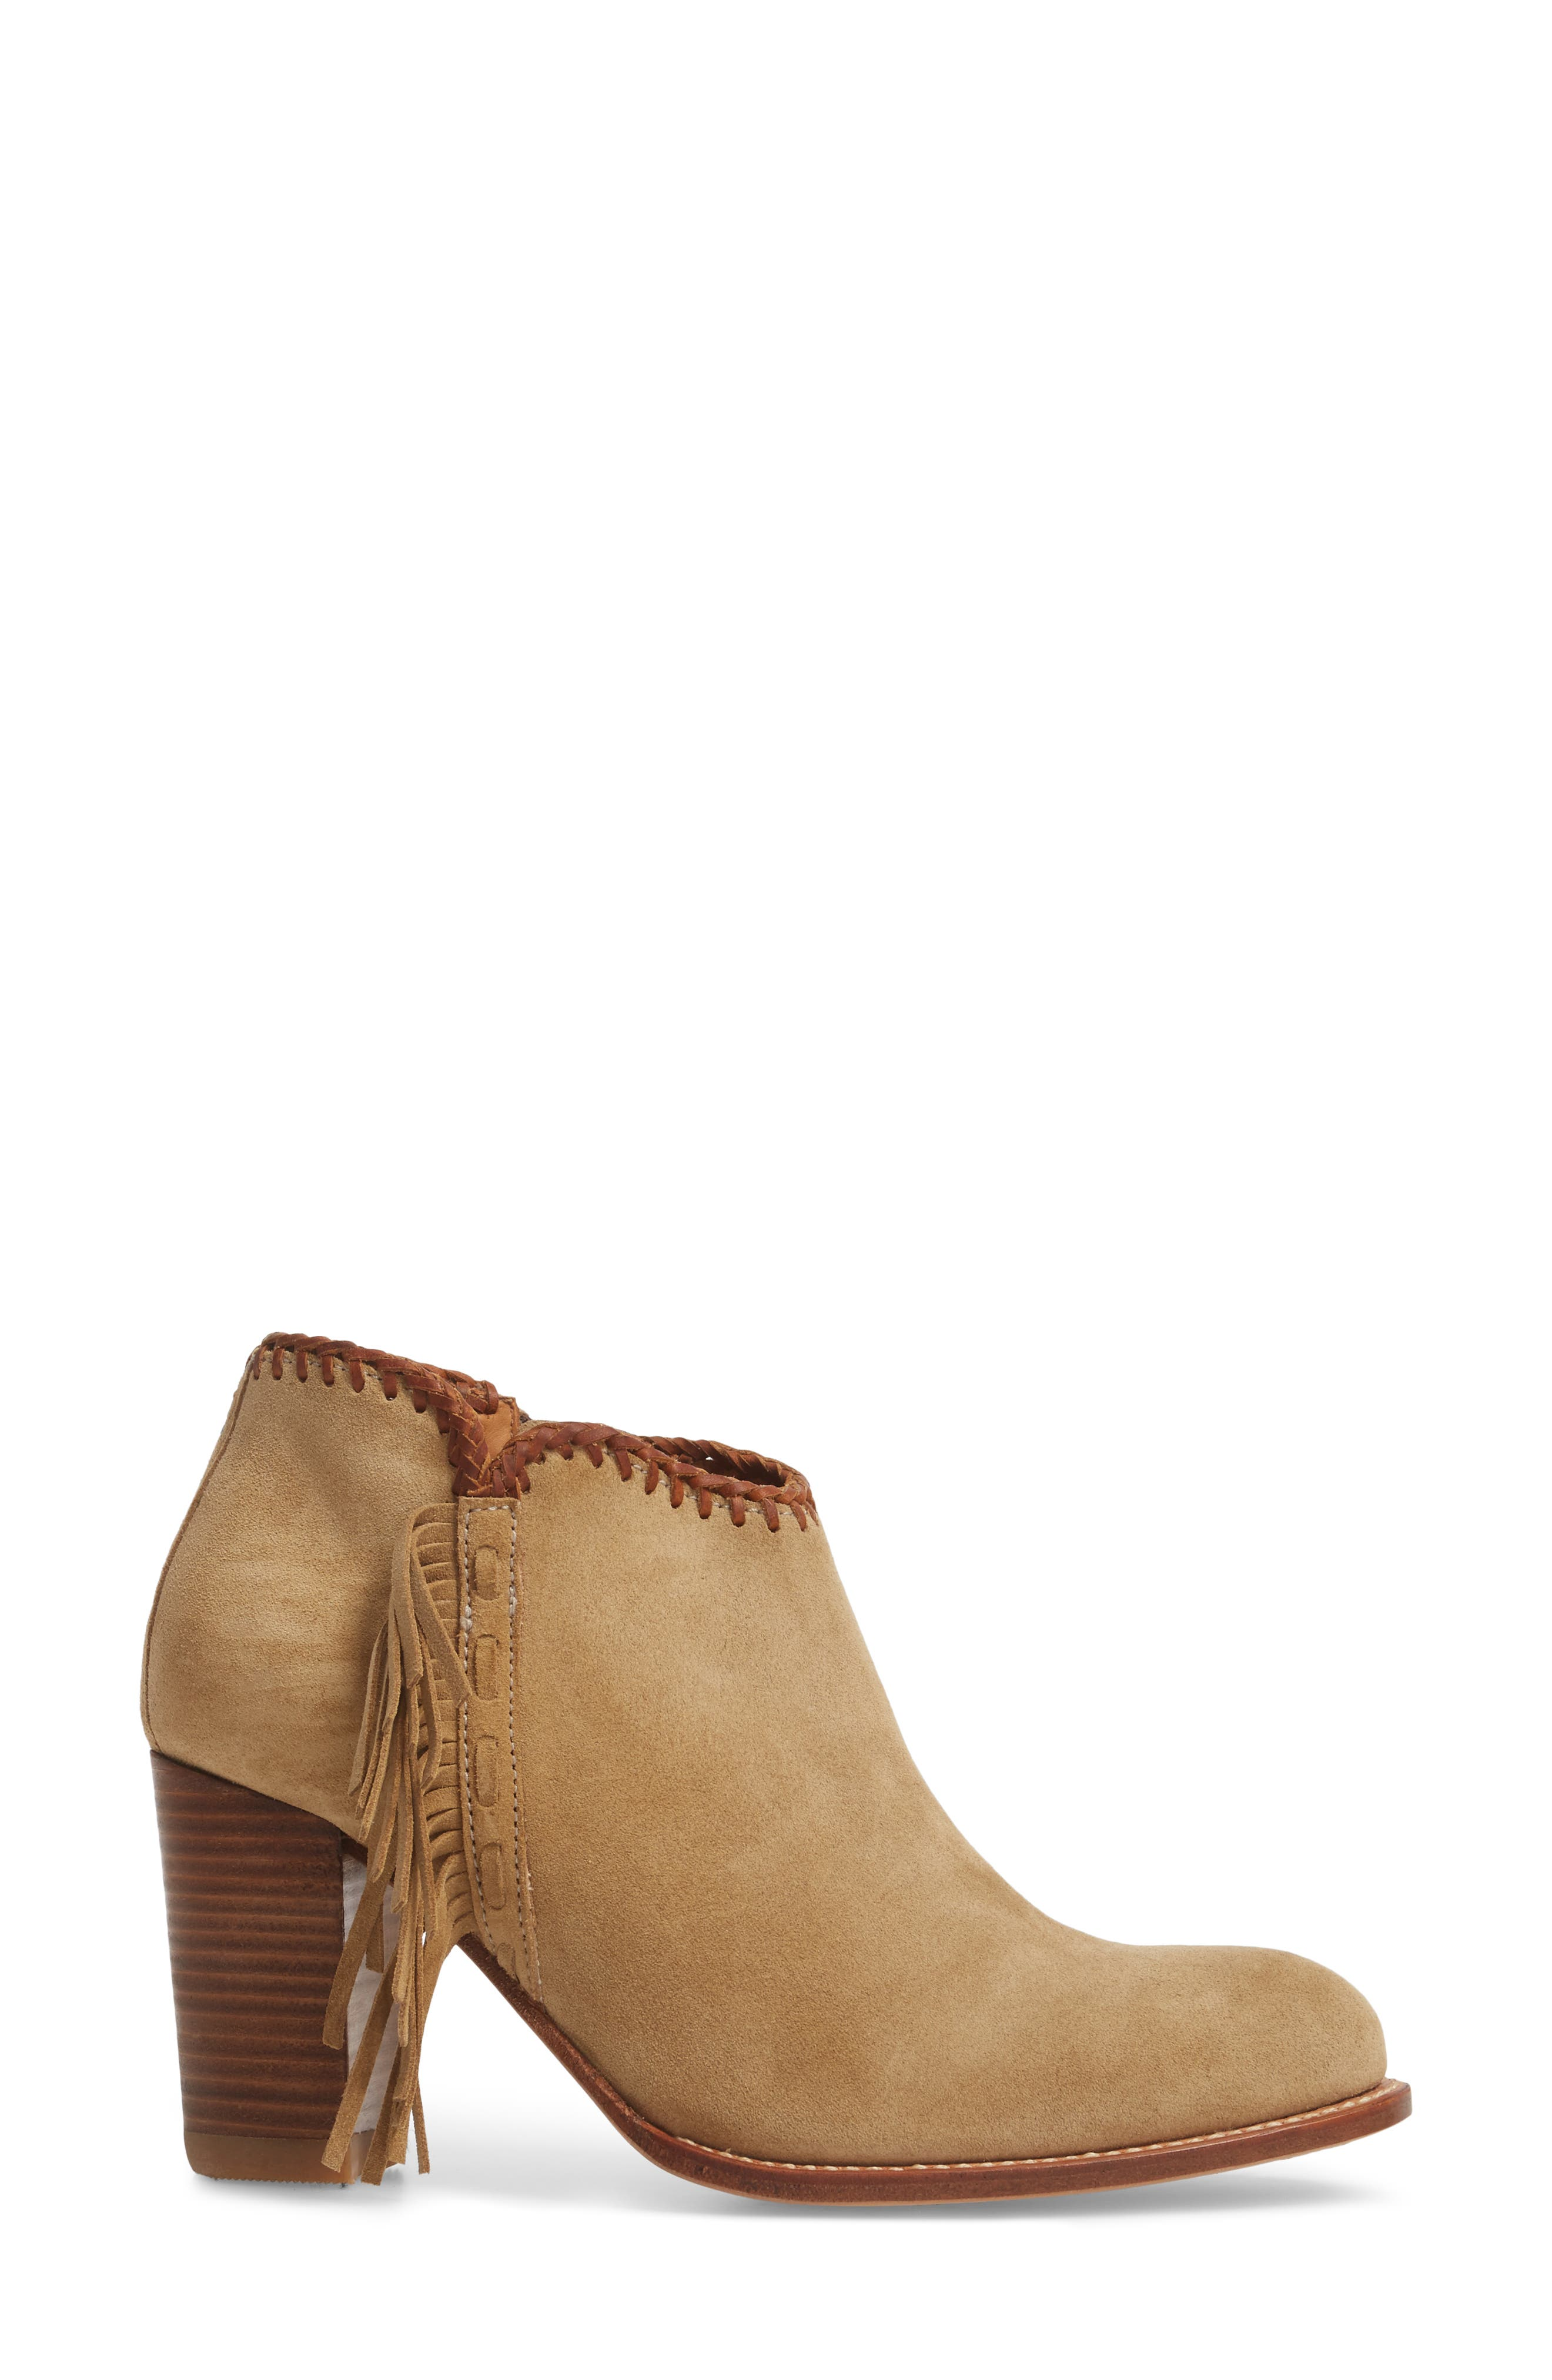 Sonya Fringed Bootie,                             Alternate thumbnail 3, color,                             250